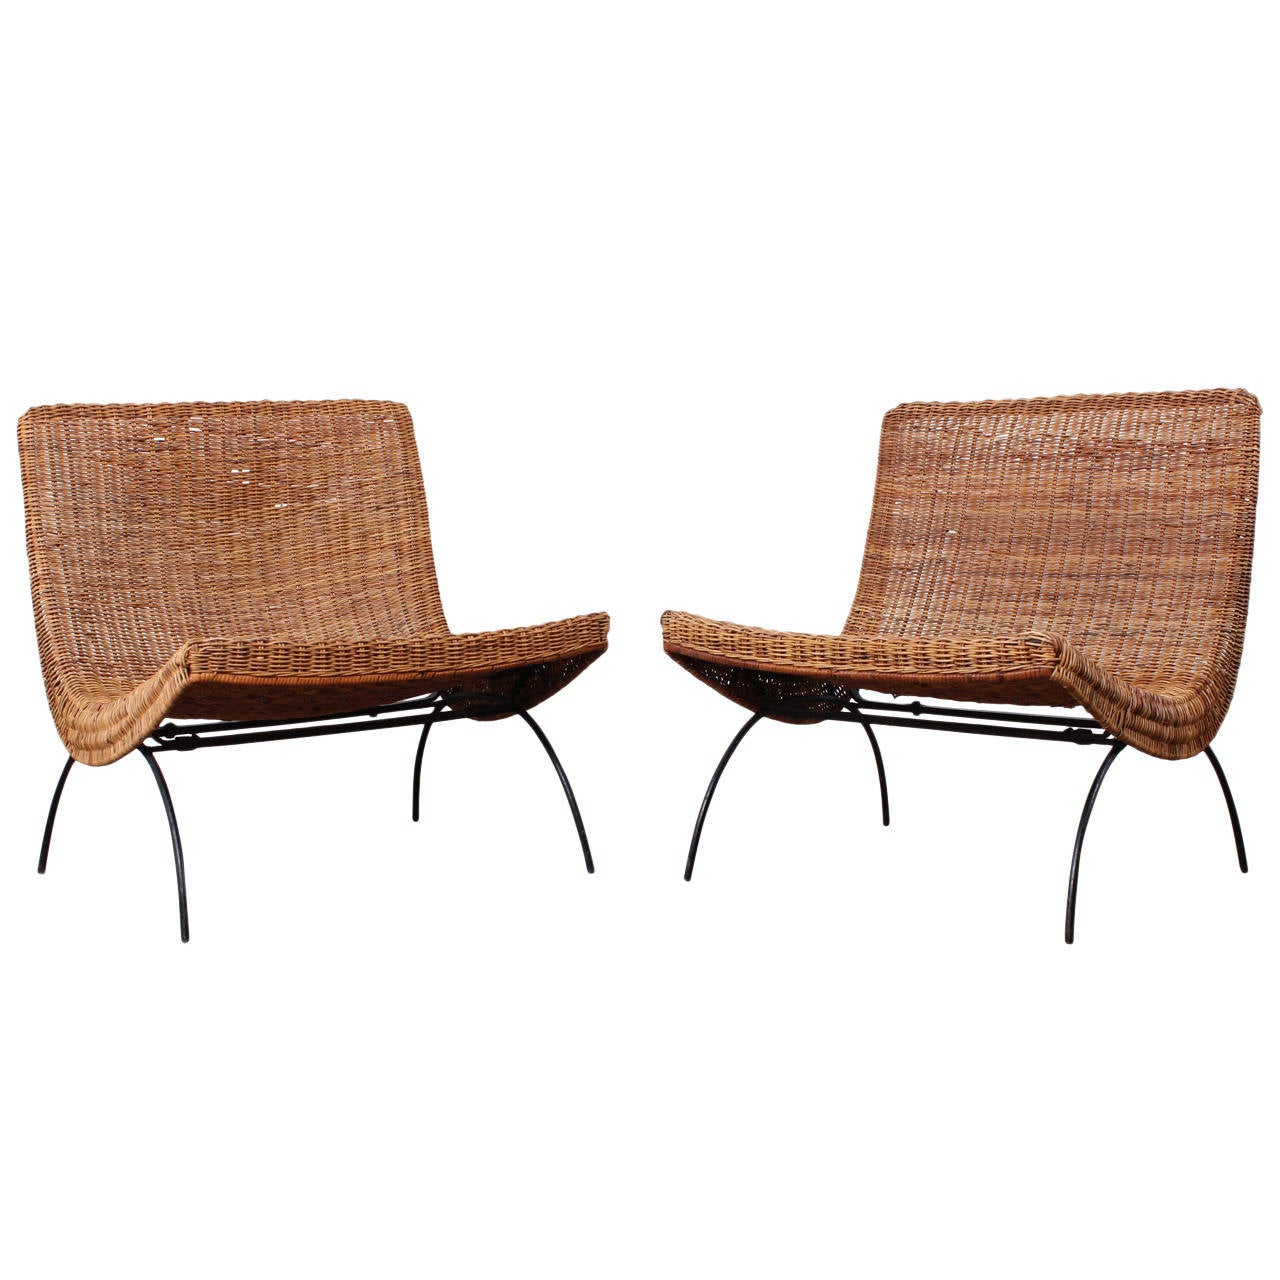 Attractive Pair Of Rattan Scoop Chairs Attributed To Milo Baughman 1